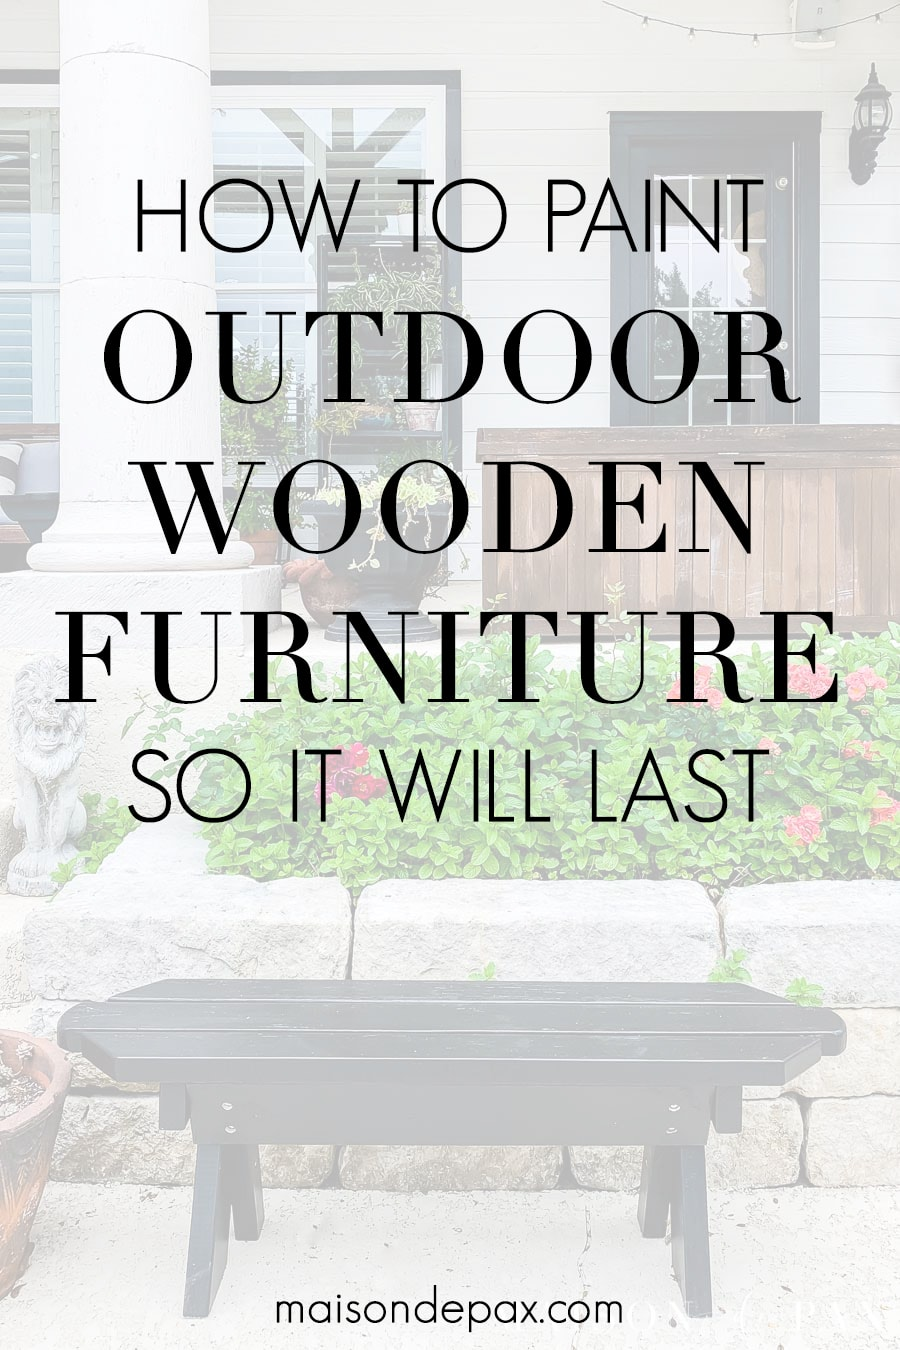 how to paint outdoor furniture so it will last | Maison de Pax